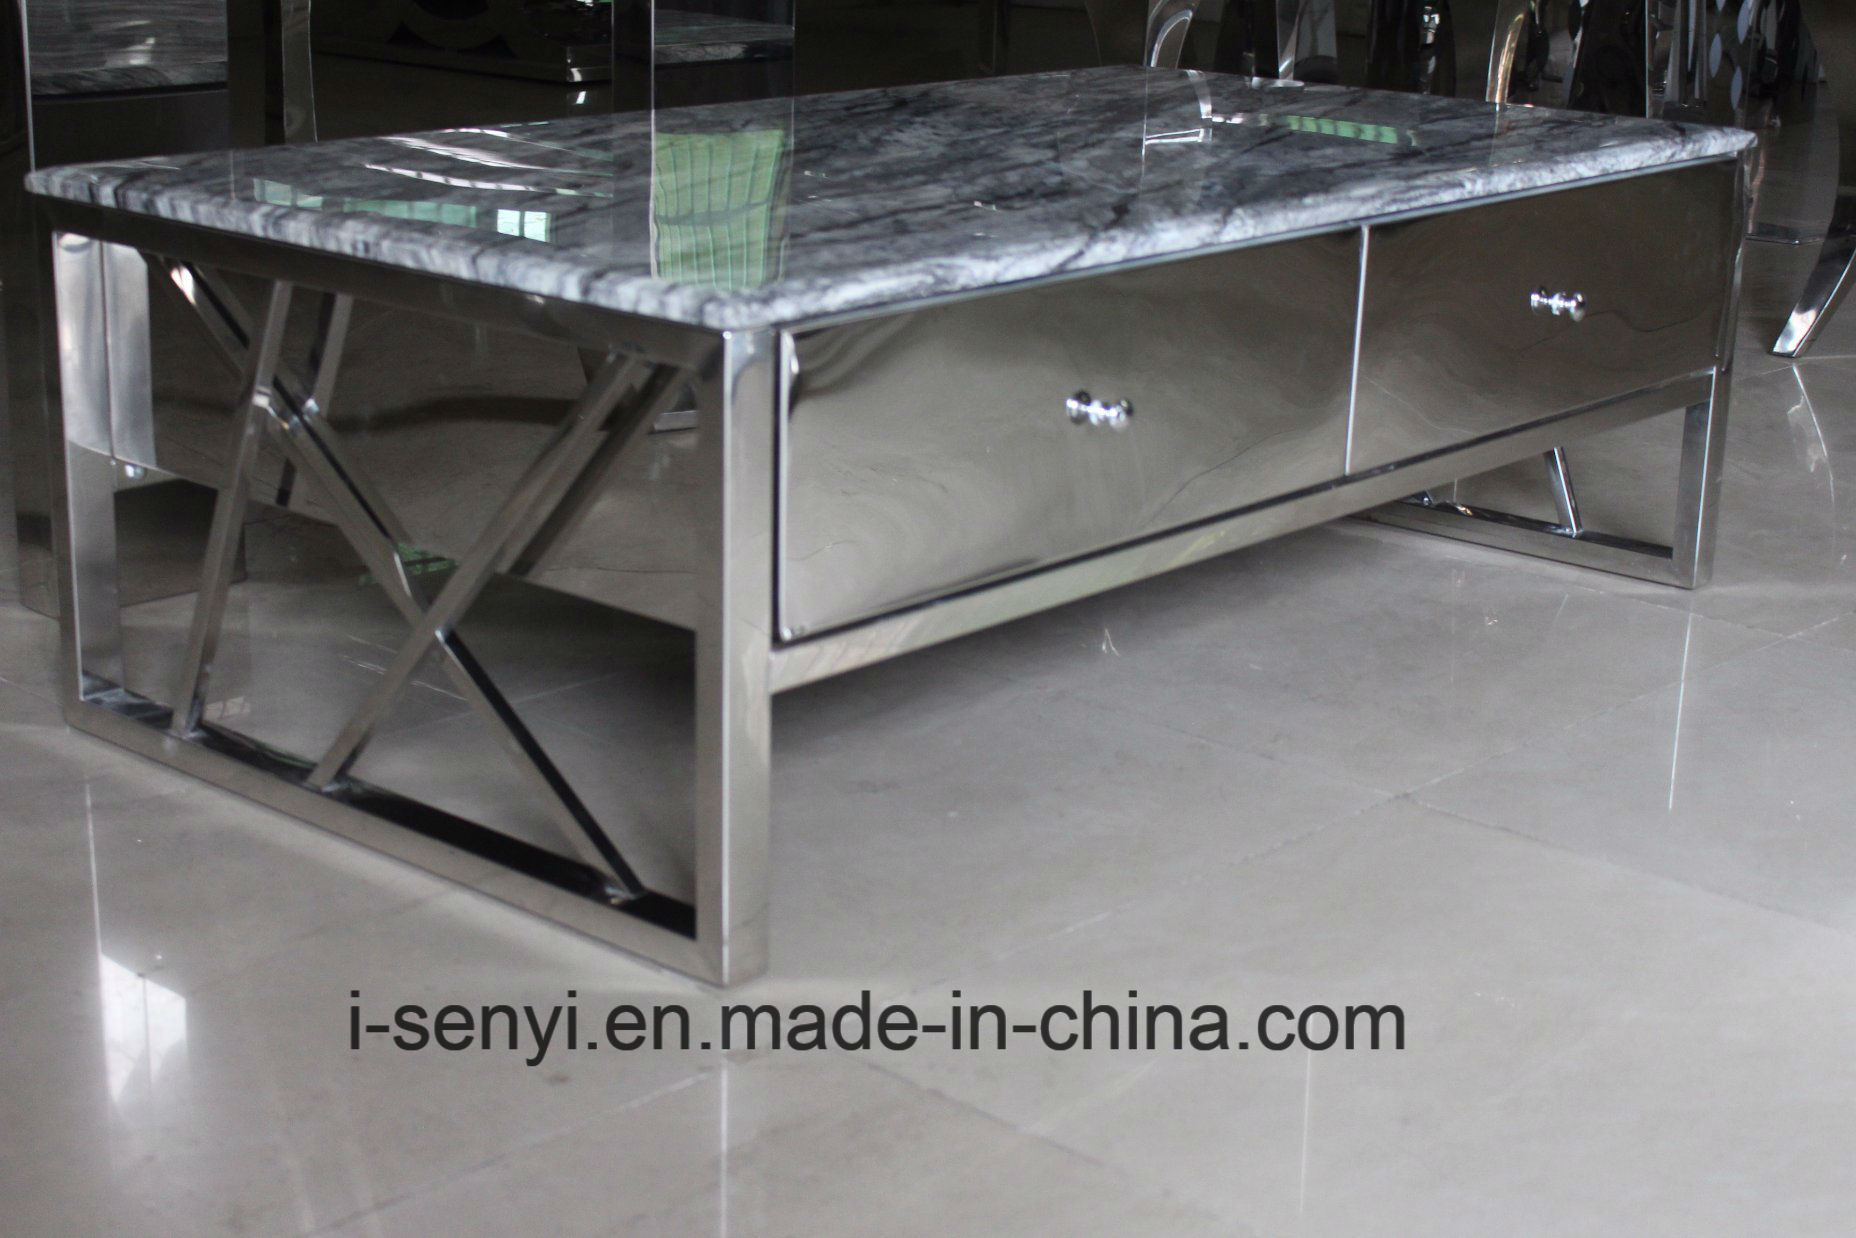 China modern living room furniture stainless steel frame with 4 solid wood drawers coffee table china home furniture stainless steel furniture